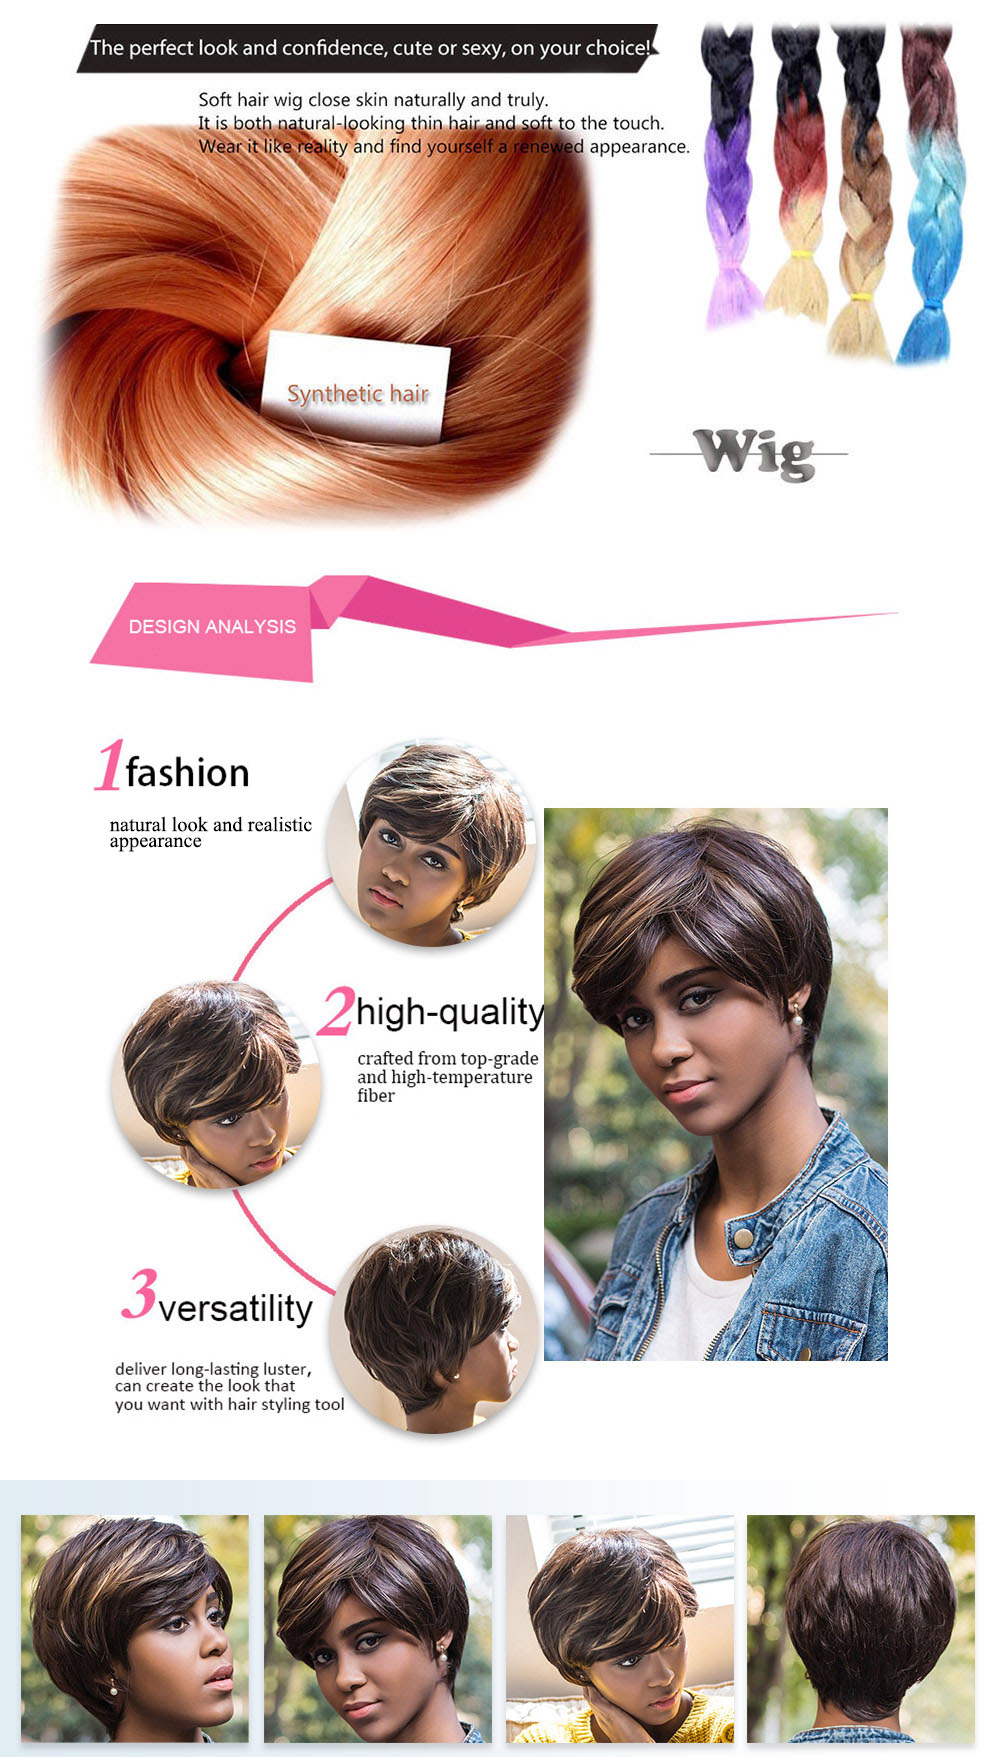 AISIHAIR Women Short Straight Mixed Colors Side Bangs Synthetic Wig Natural Dyeing Hair Style